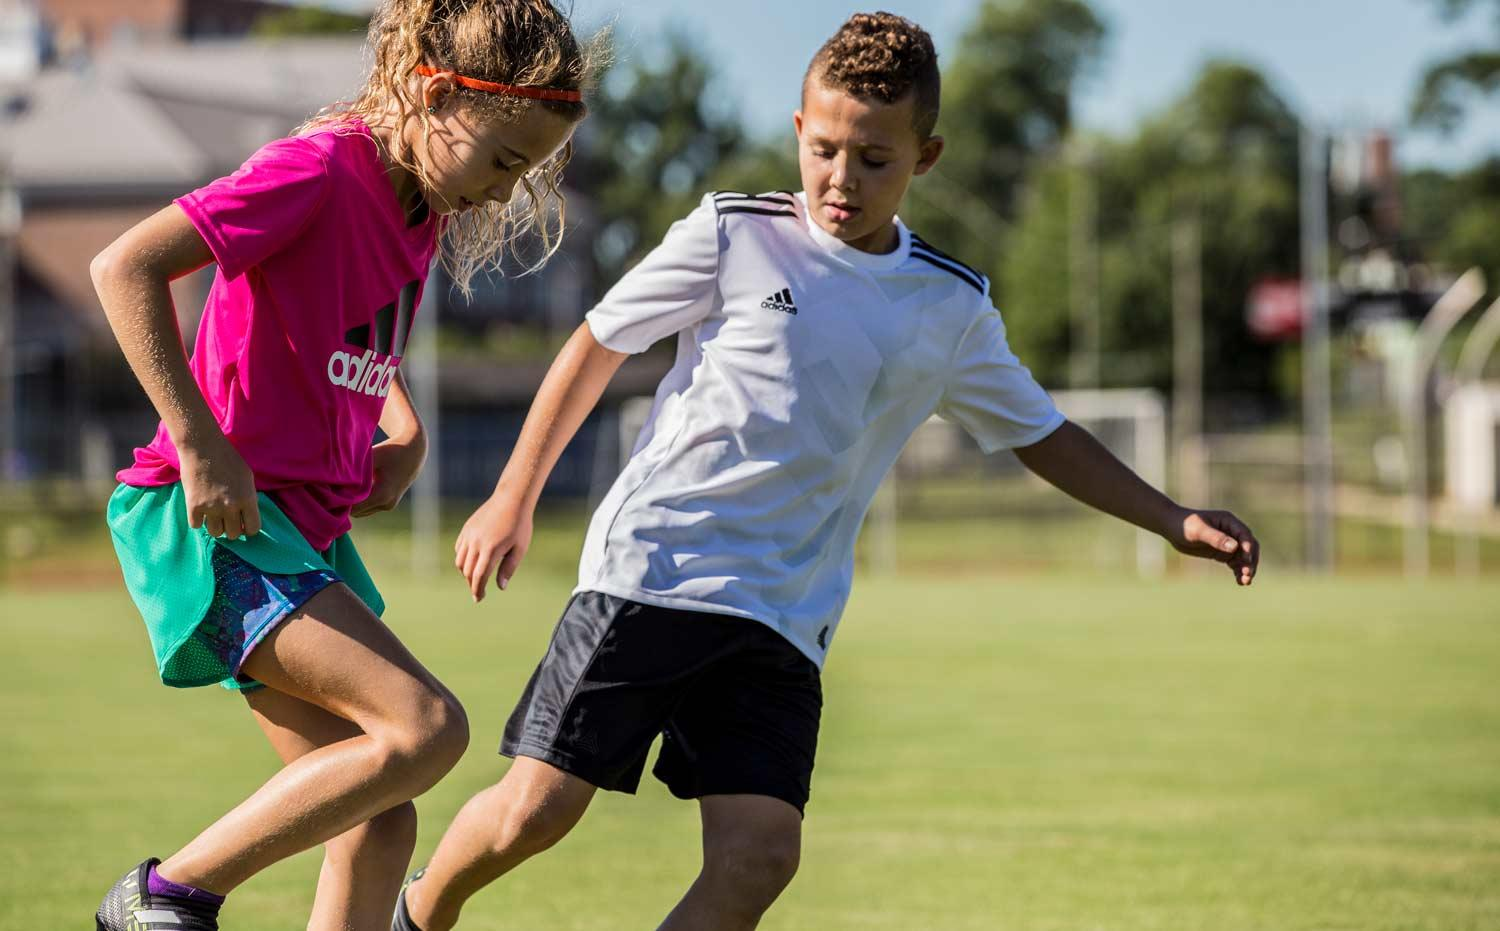 How to Help Your Child Become a Better Soccer Player